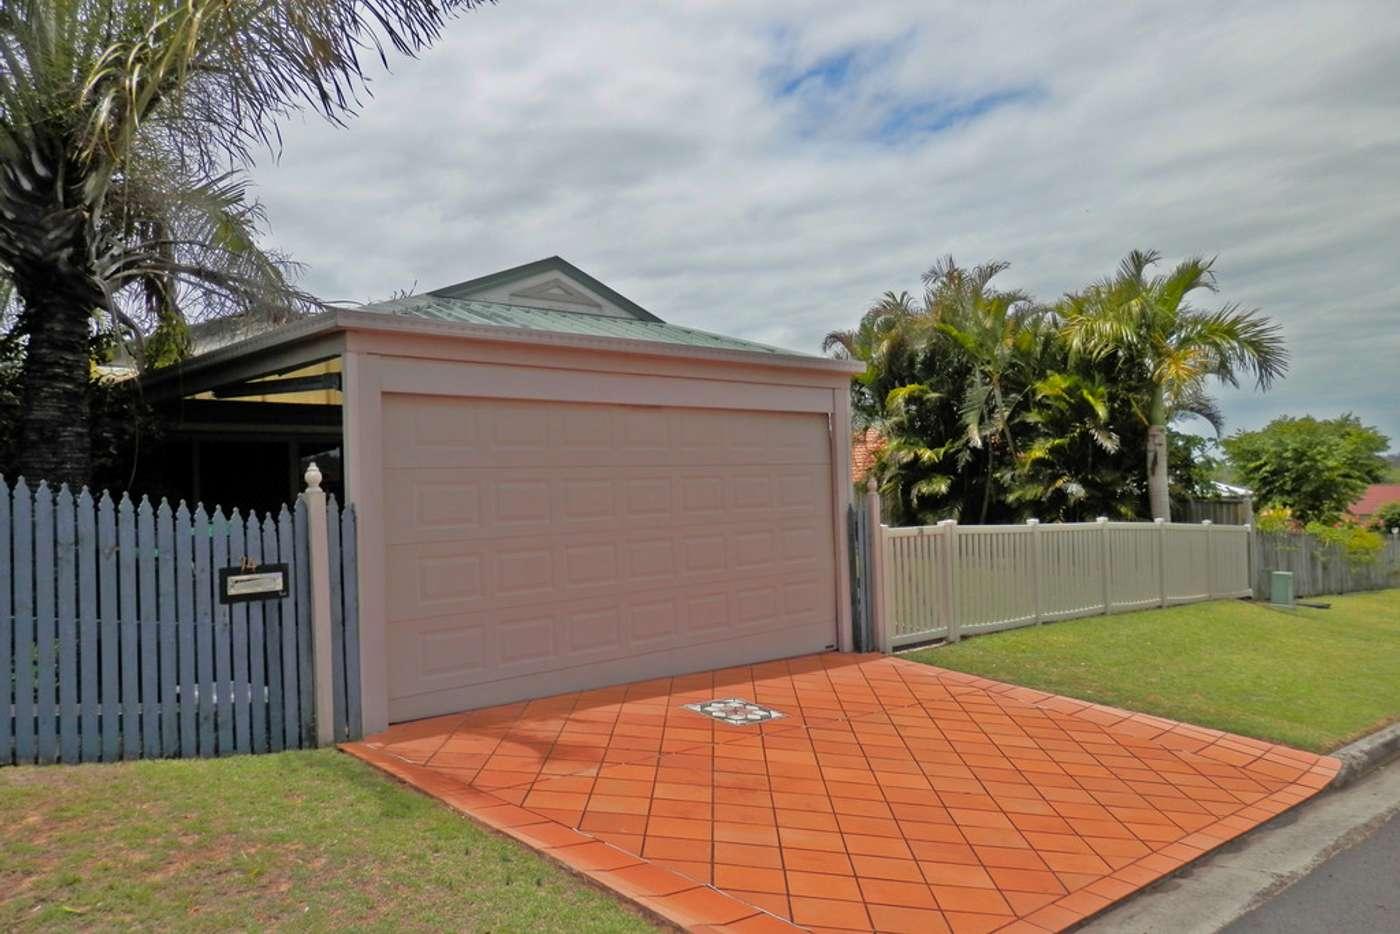 Main view of Homely house listing, 74 Rumsey Drive, Raceview QLD 4305